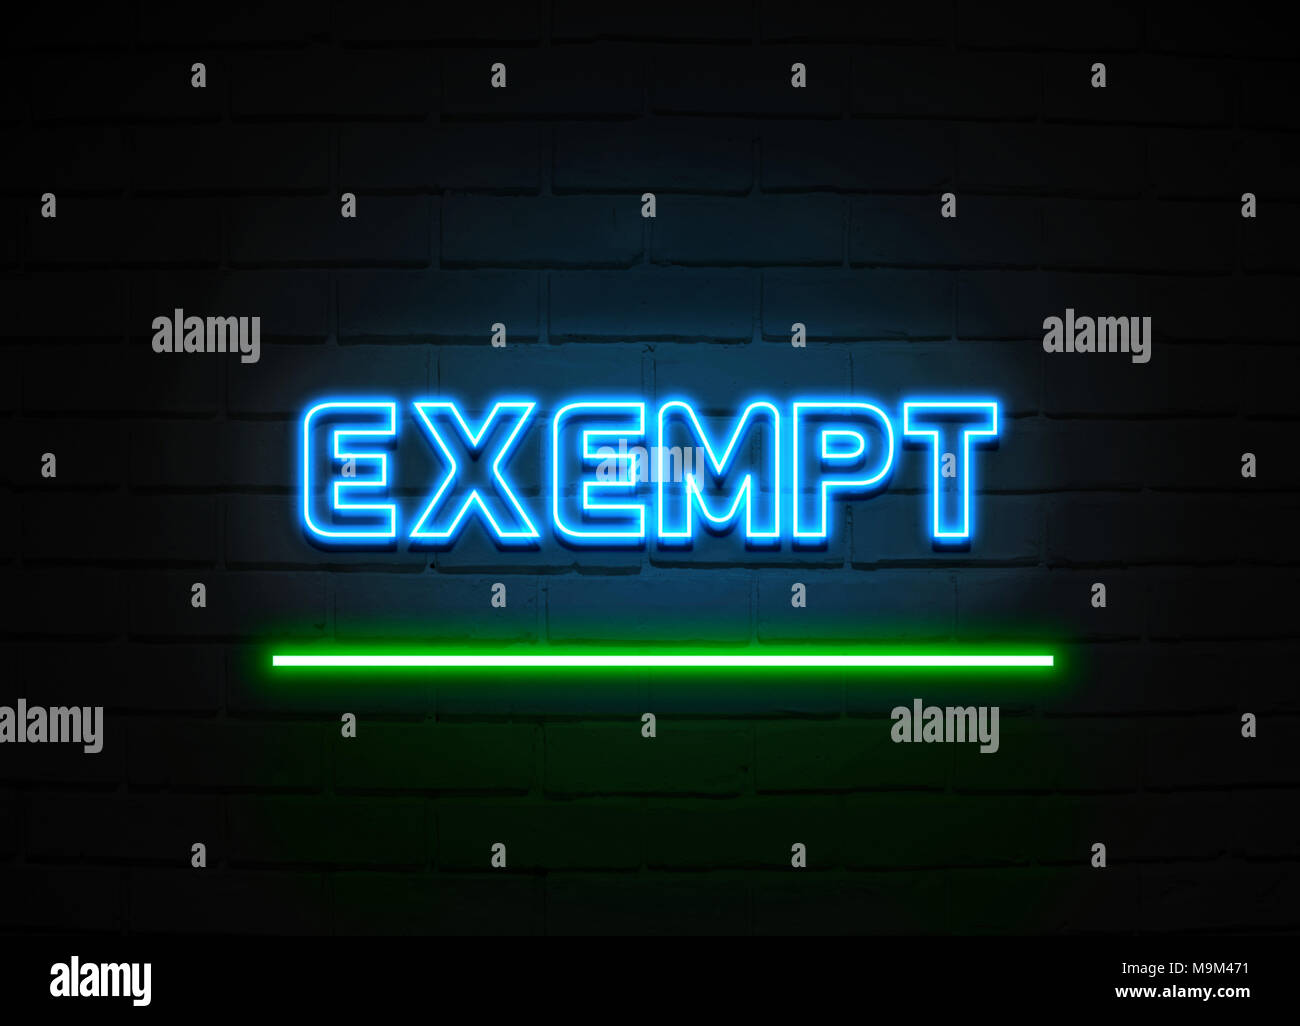 Exempt neon sign - Glowing Neon Sign on brickwall wall - 3D rendered royalty free stock illustration. - Stock Image